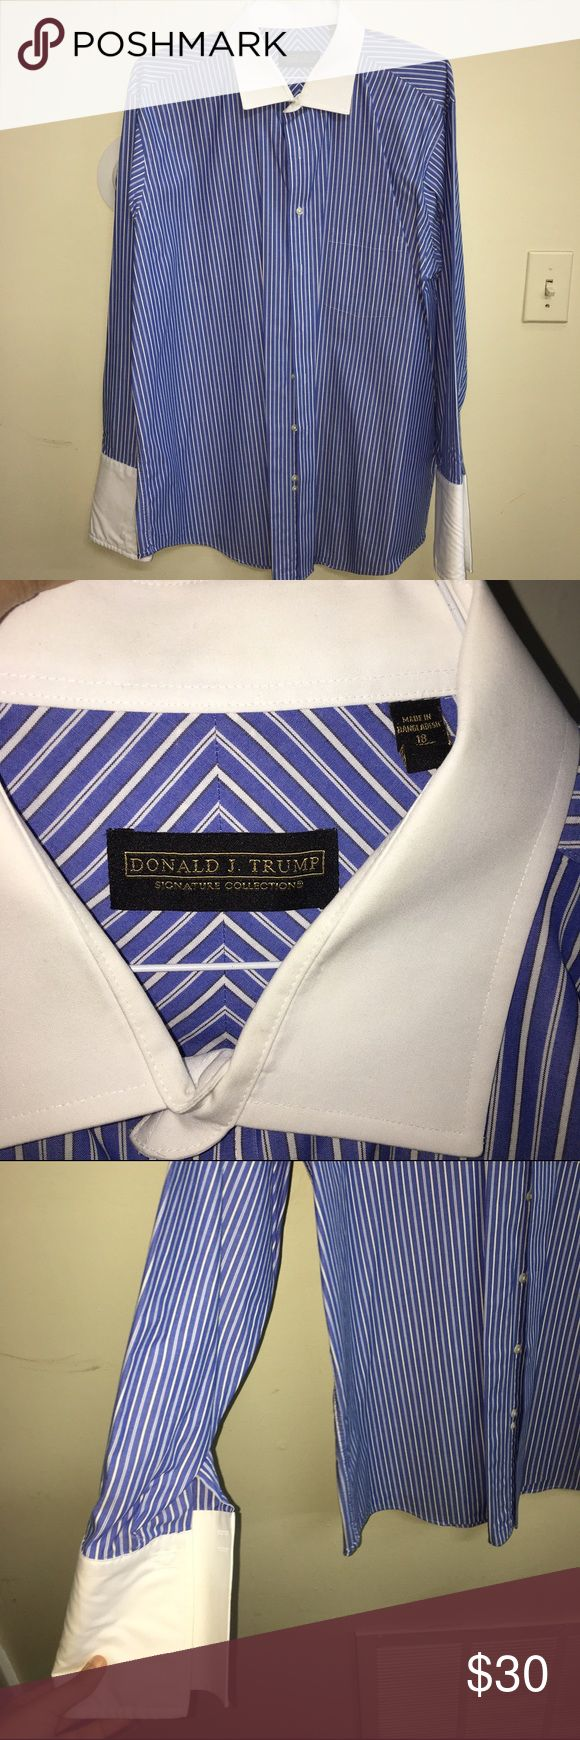 Donald Trump button down shirt 👍 White and blue striped button down by Donald Trump. White collar and cuff contrast. Good used condition dry cleaned. Offers are welcome. donald trump Shirts Dress Shirts